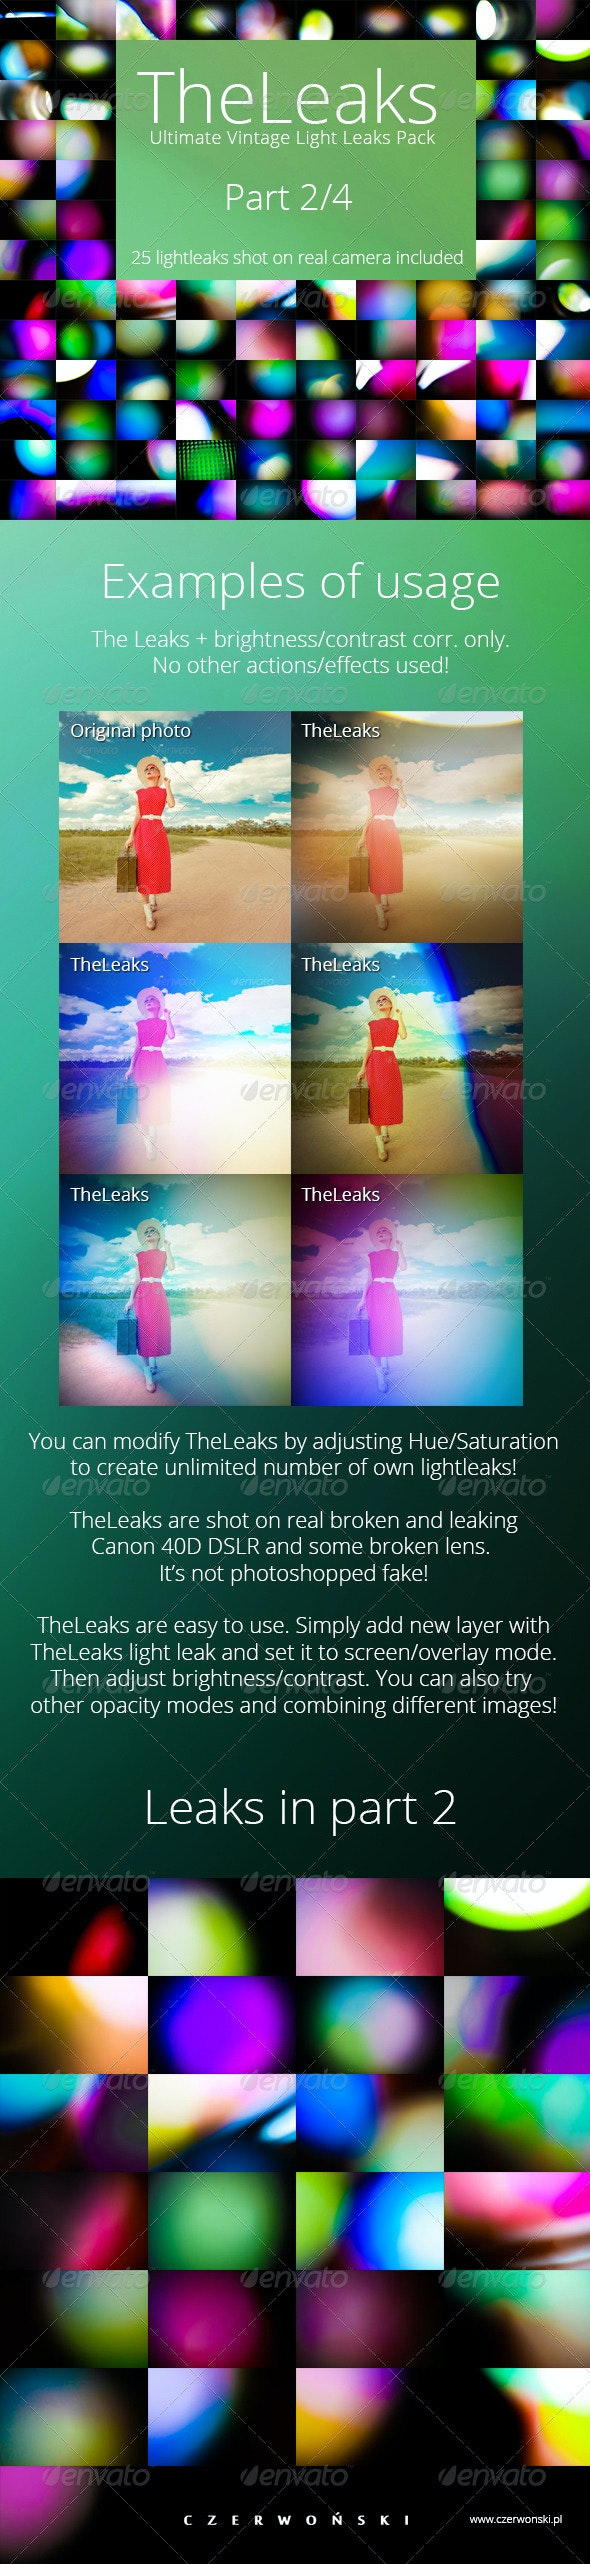 TheLeaks - Ultimate Vintage Light Leaks Pack 2/4 - Backgrounds Decorative